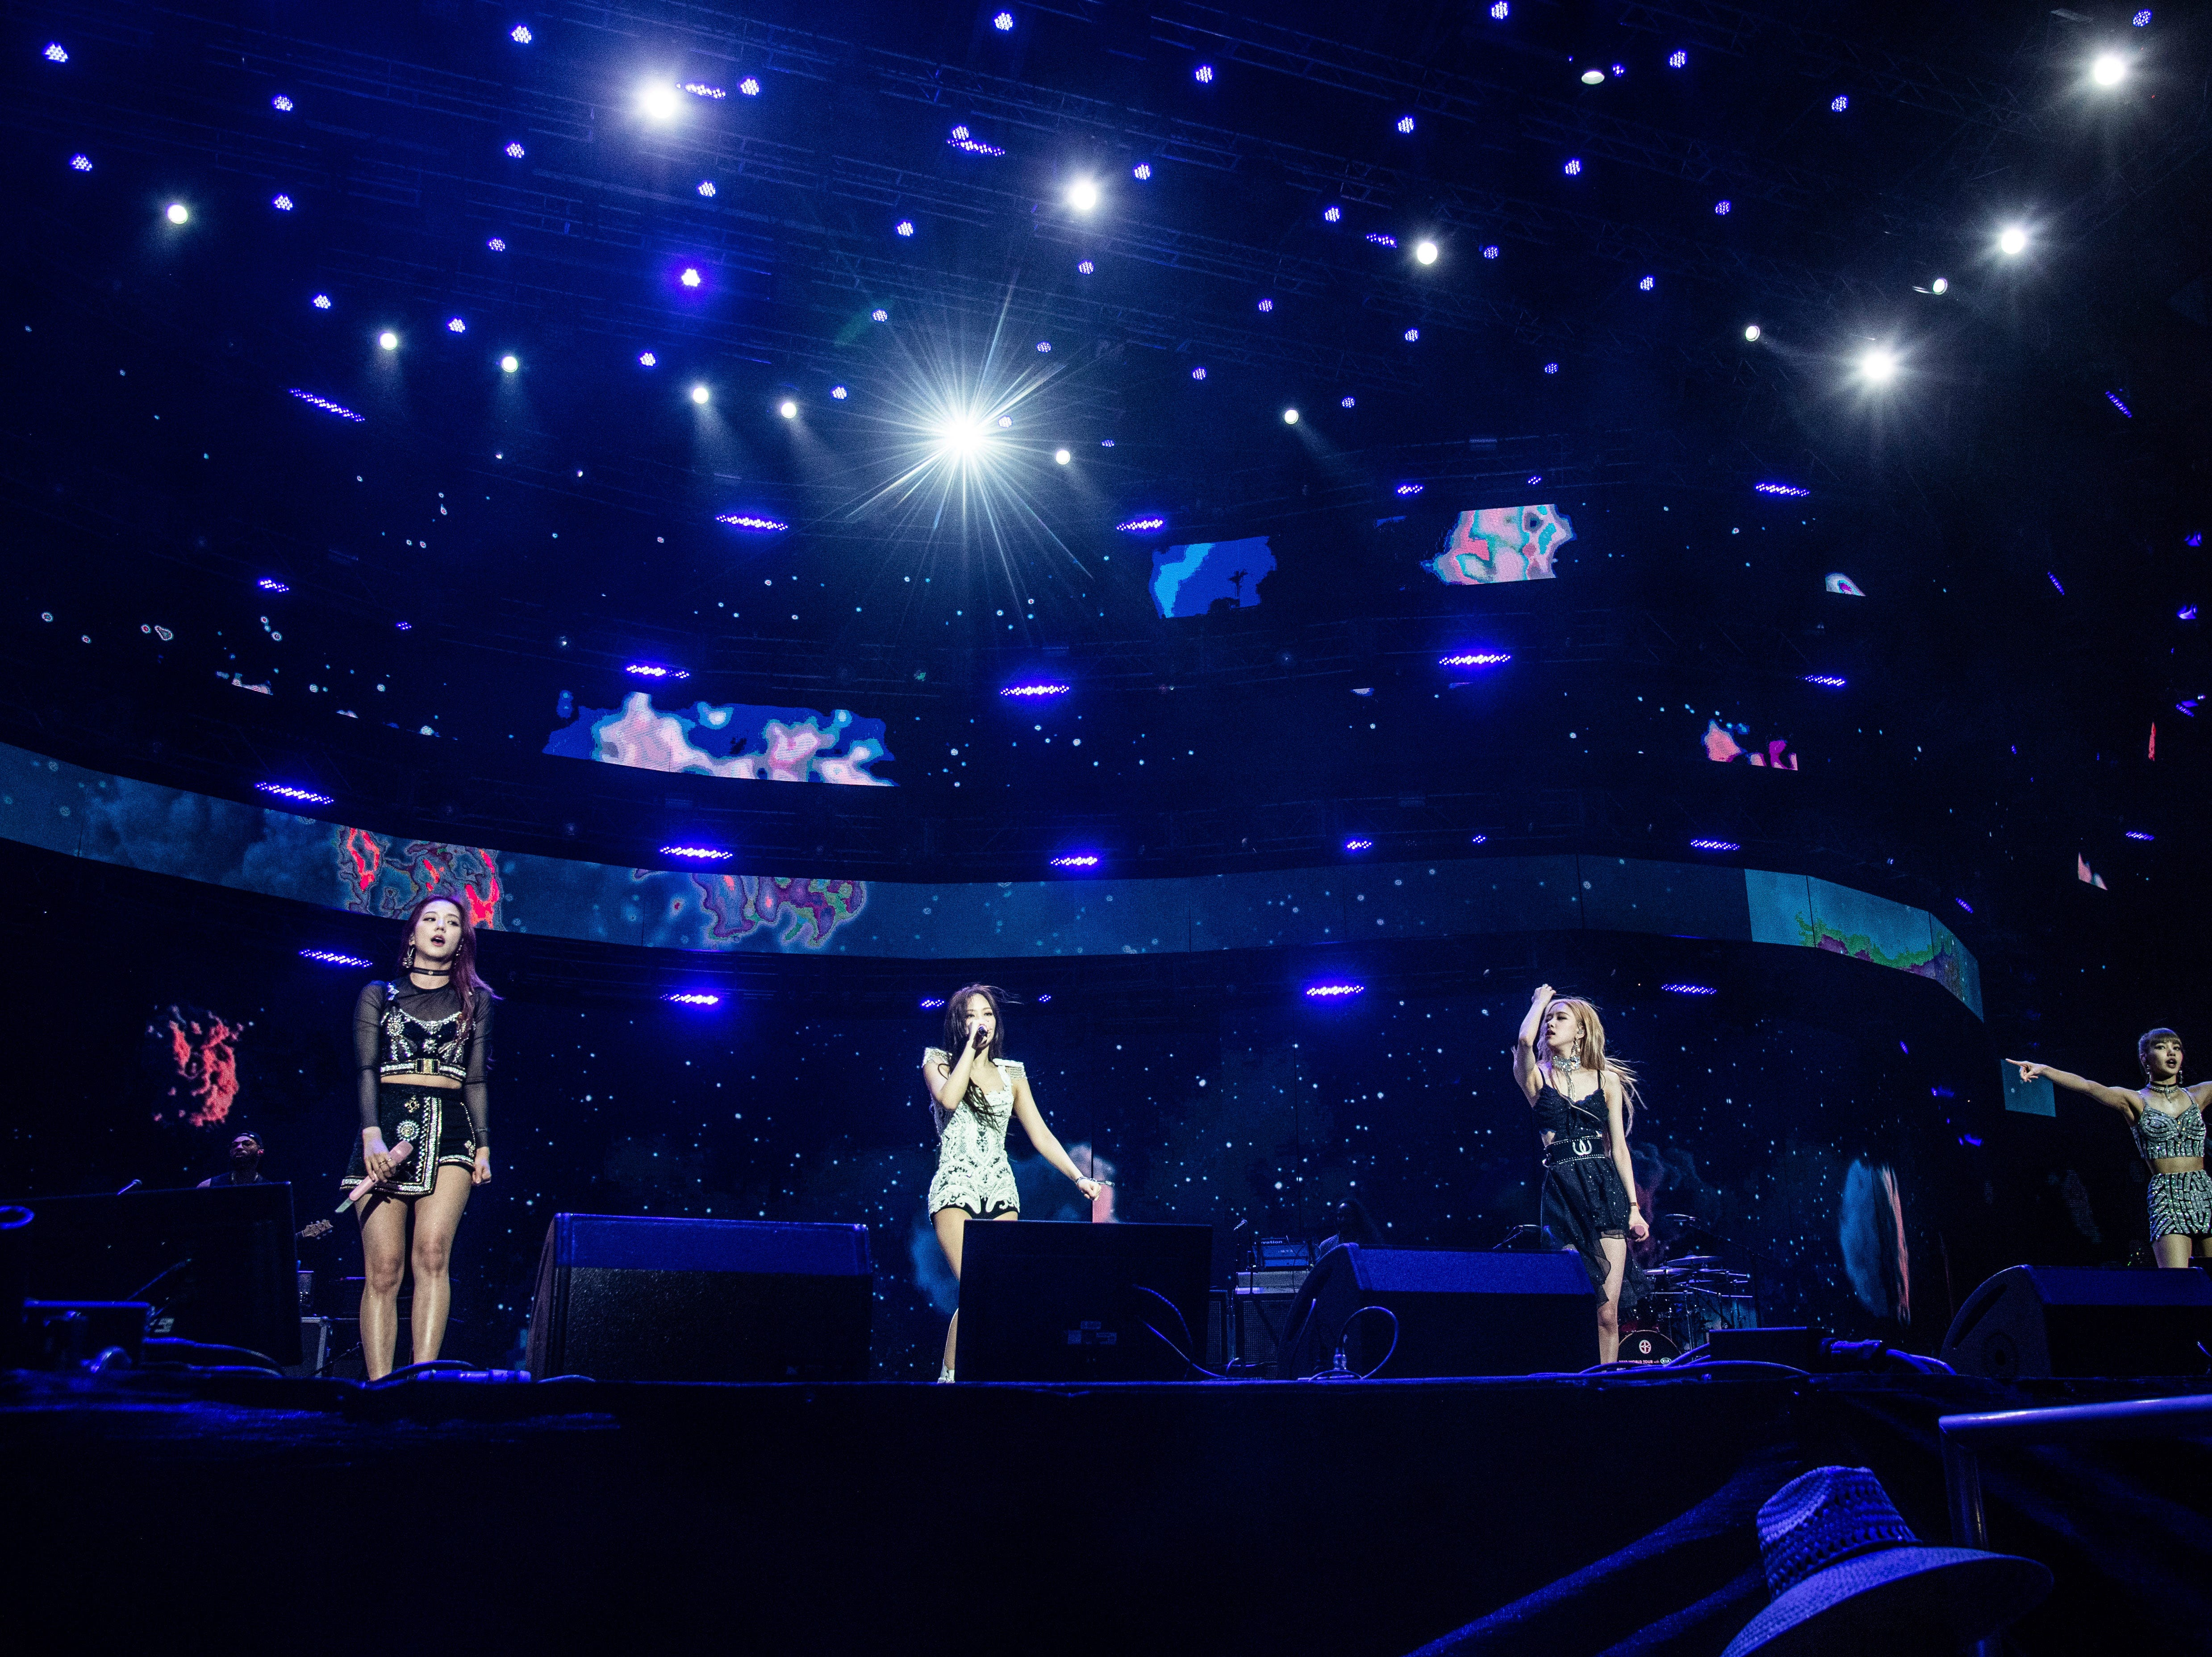 Jisoo, from left, Jennie Kim, Rose, and Lisa of BLACKPINK perform at the Coachella Music & Arts Festival at the Empire Polo Club on Friday, April 12, 2019, in Indio, Calif.